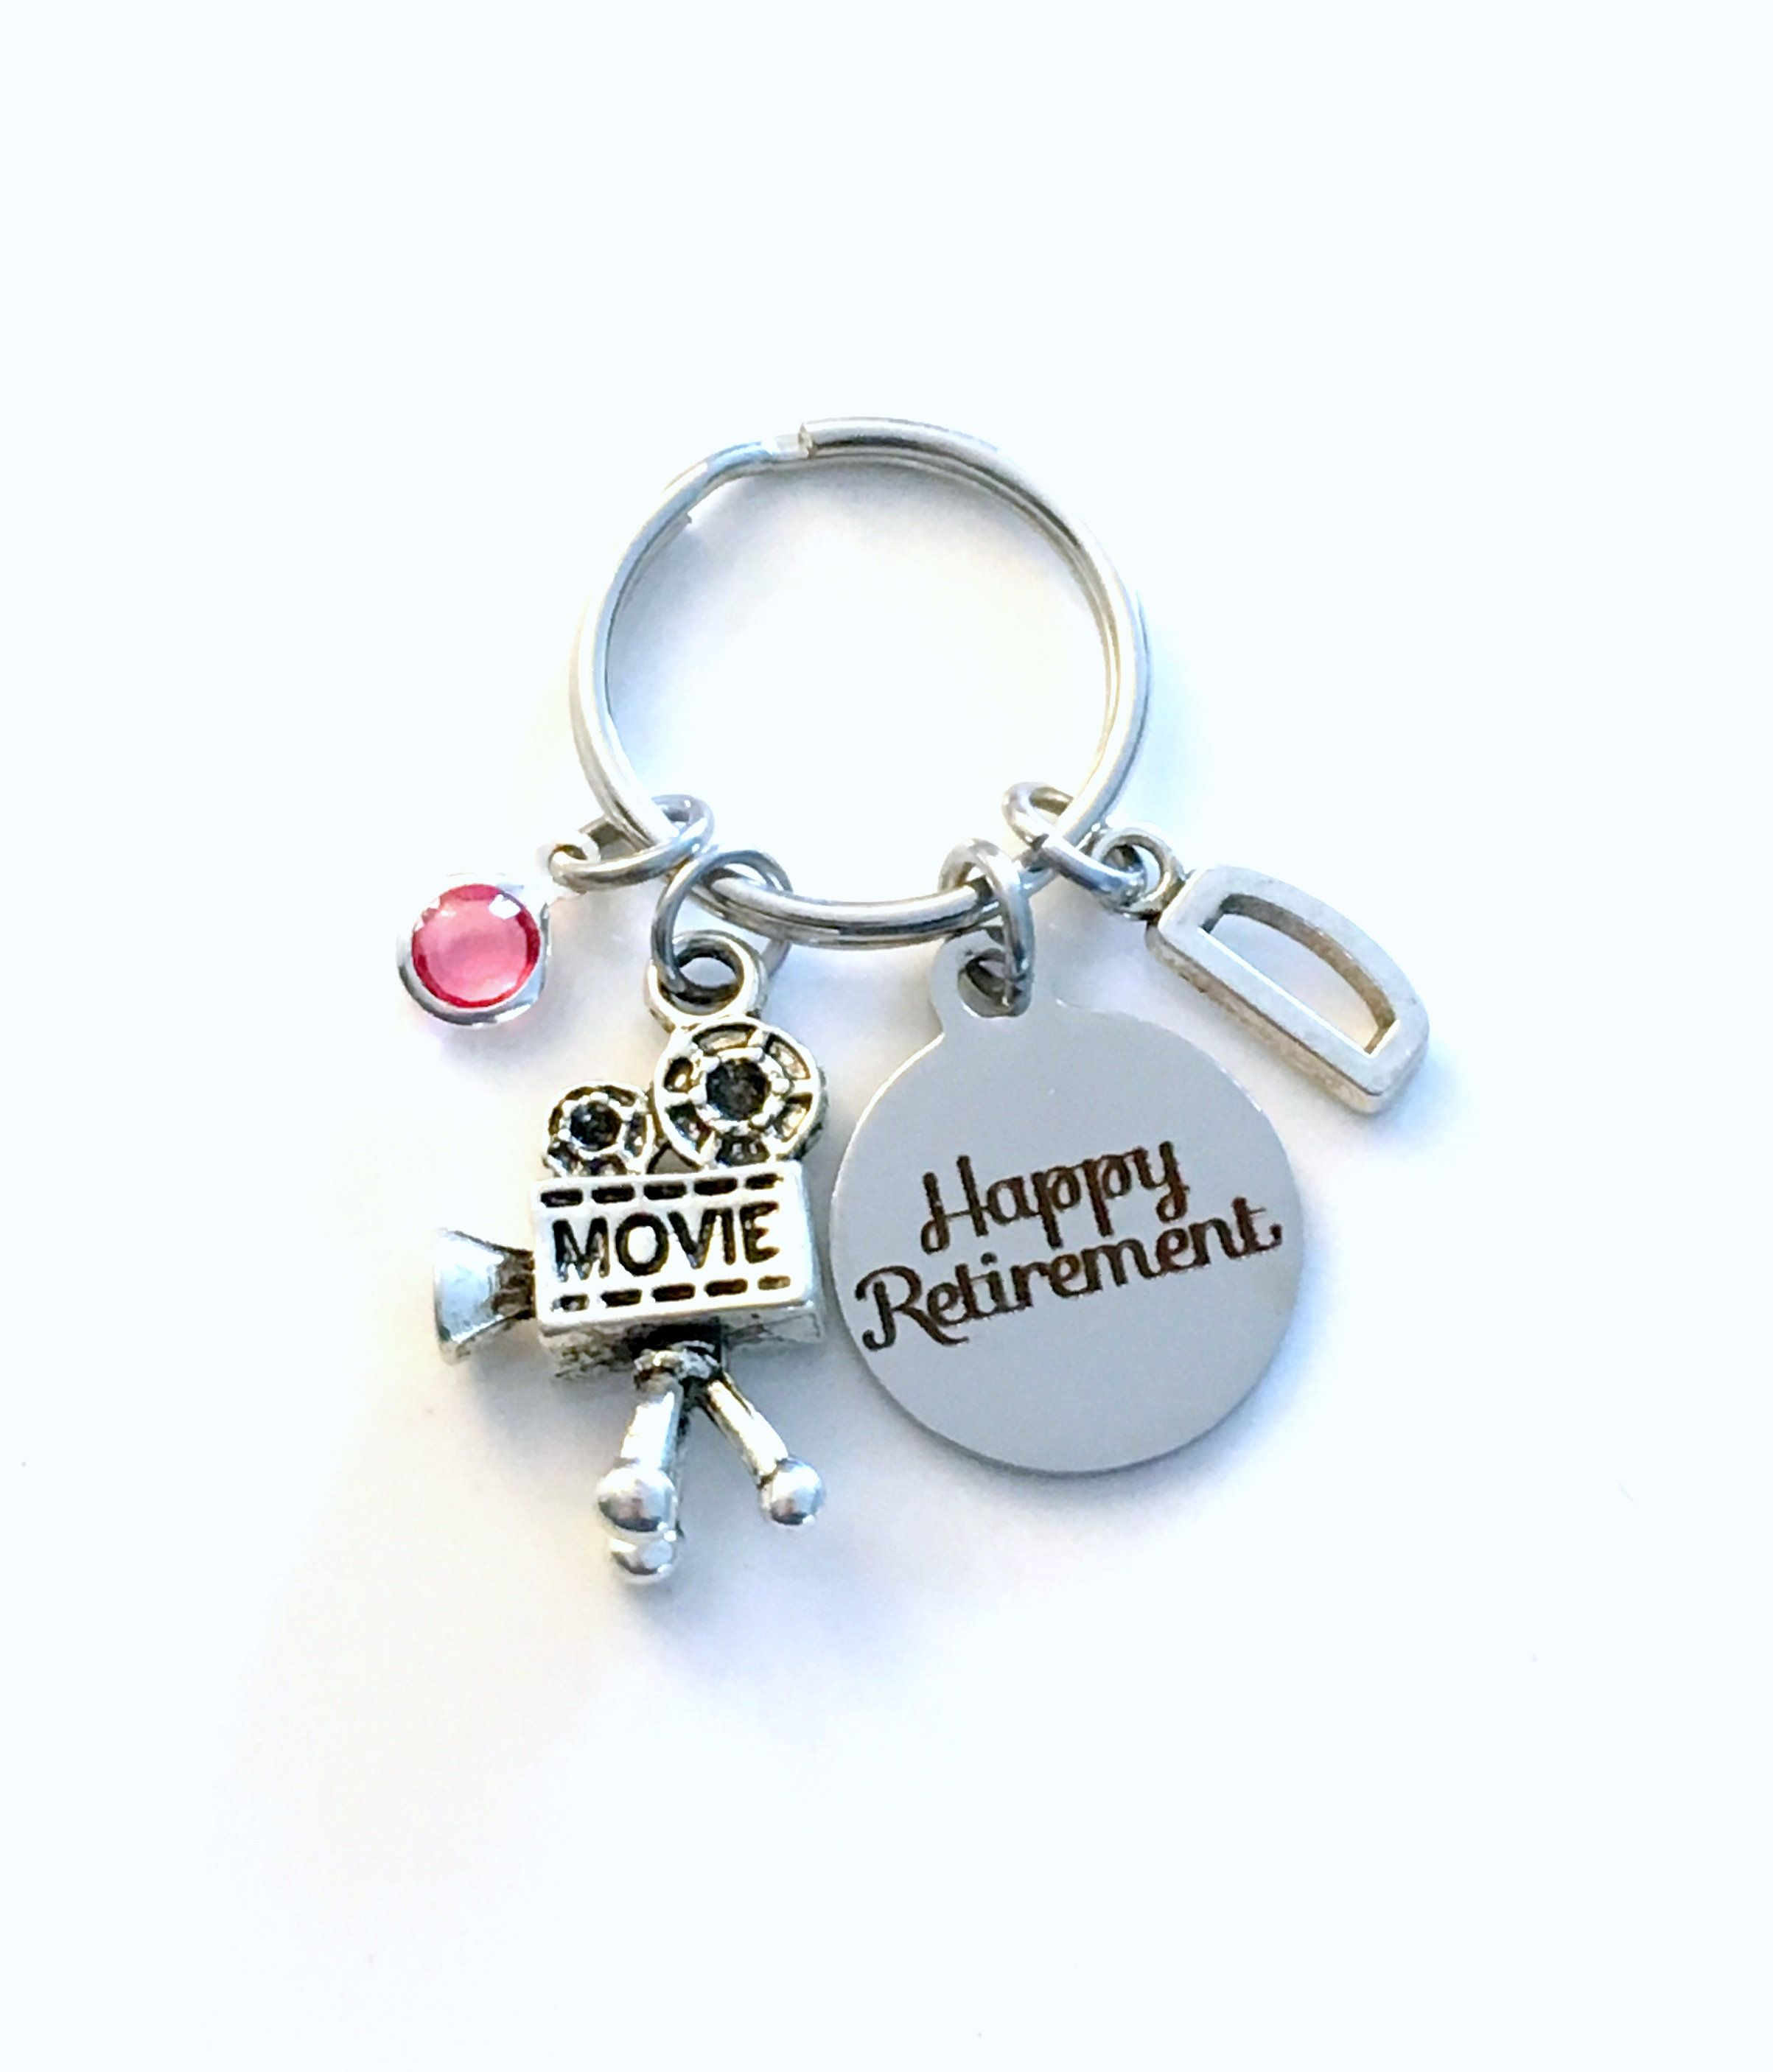 Retirement Gift for Director Keychain dbcf4c5aab